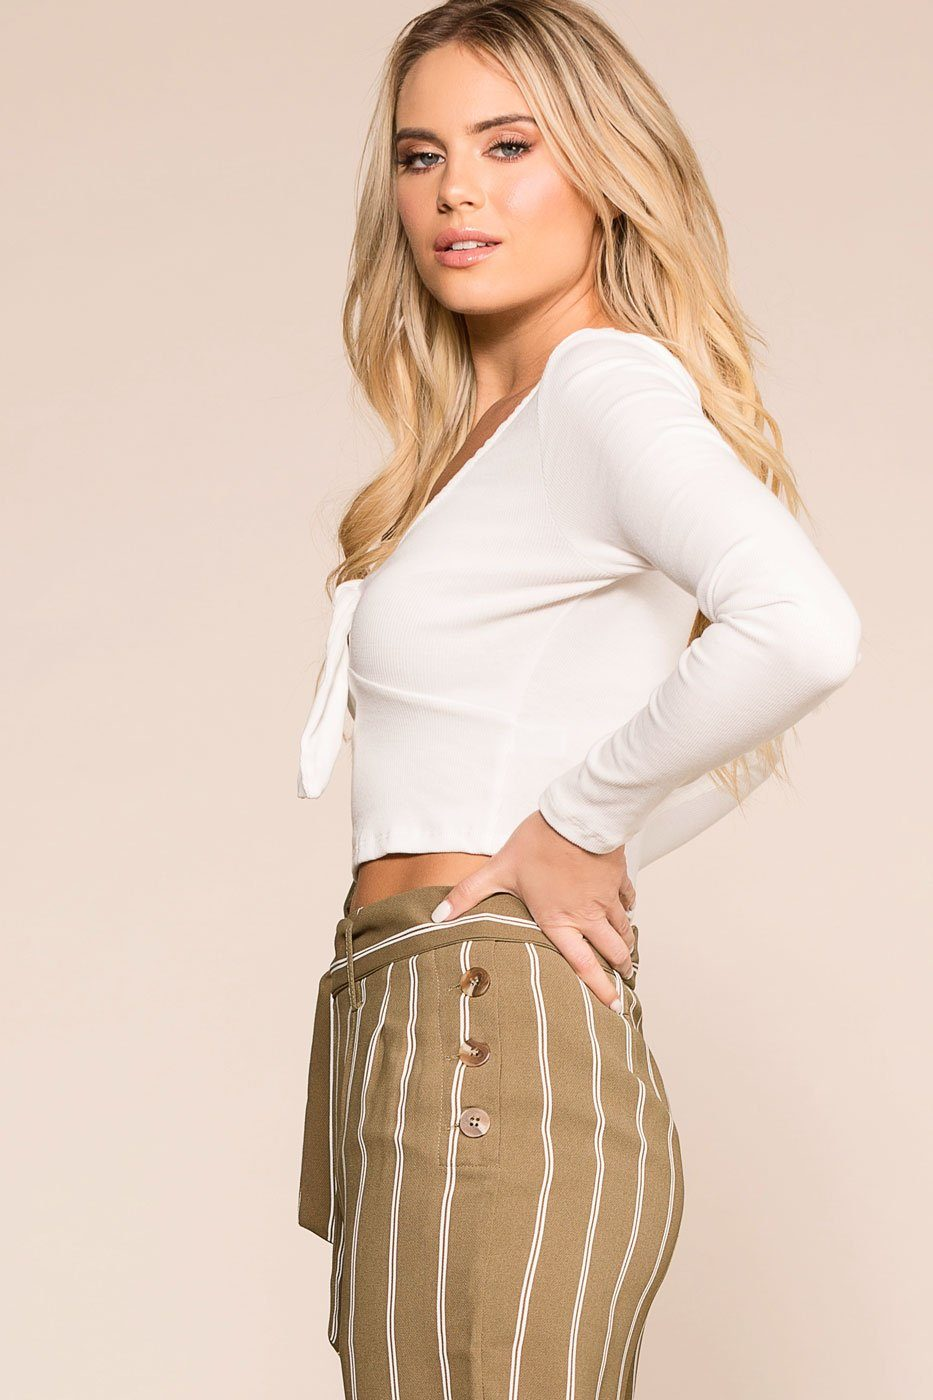 f1fa5b6c3d19a Tied Up White Long Sleeve Crop Top